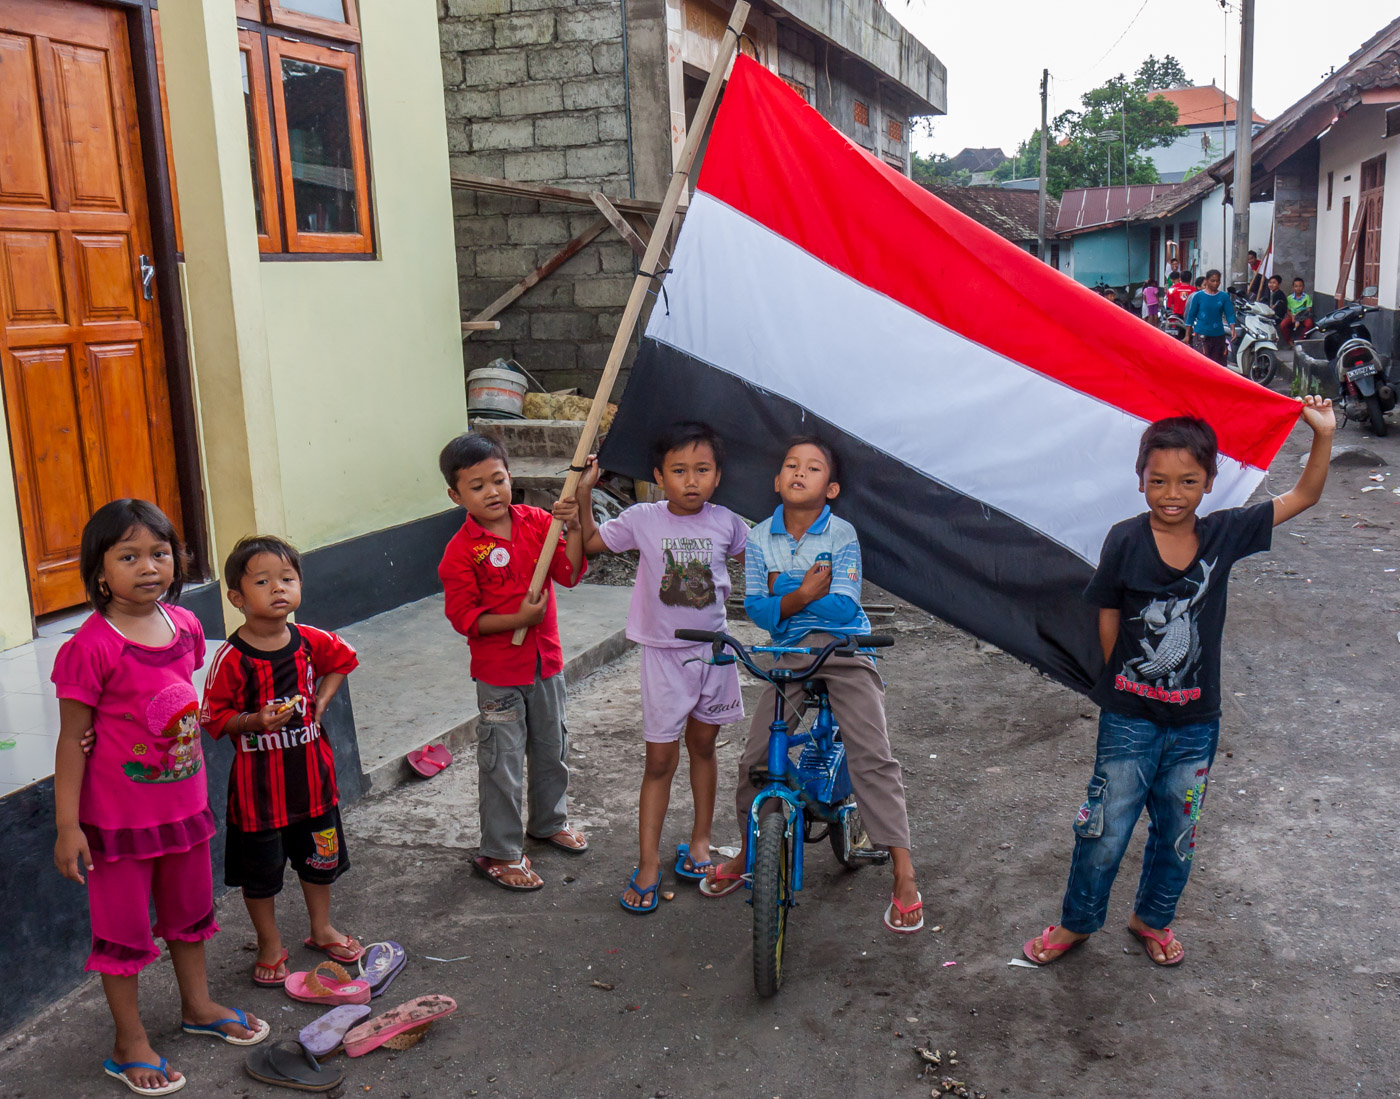 Kids and flag.